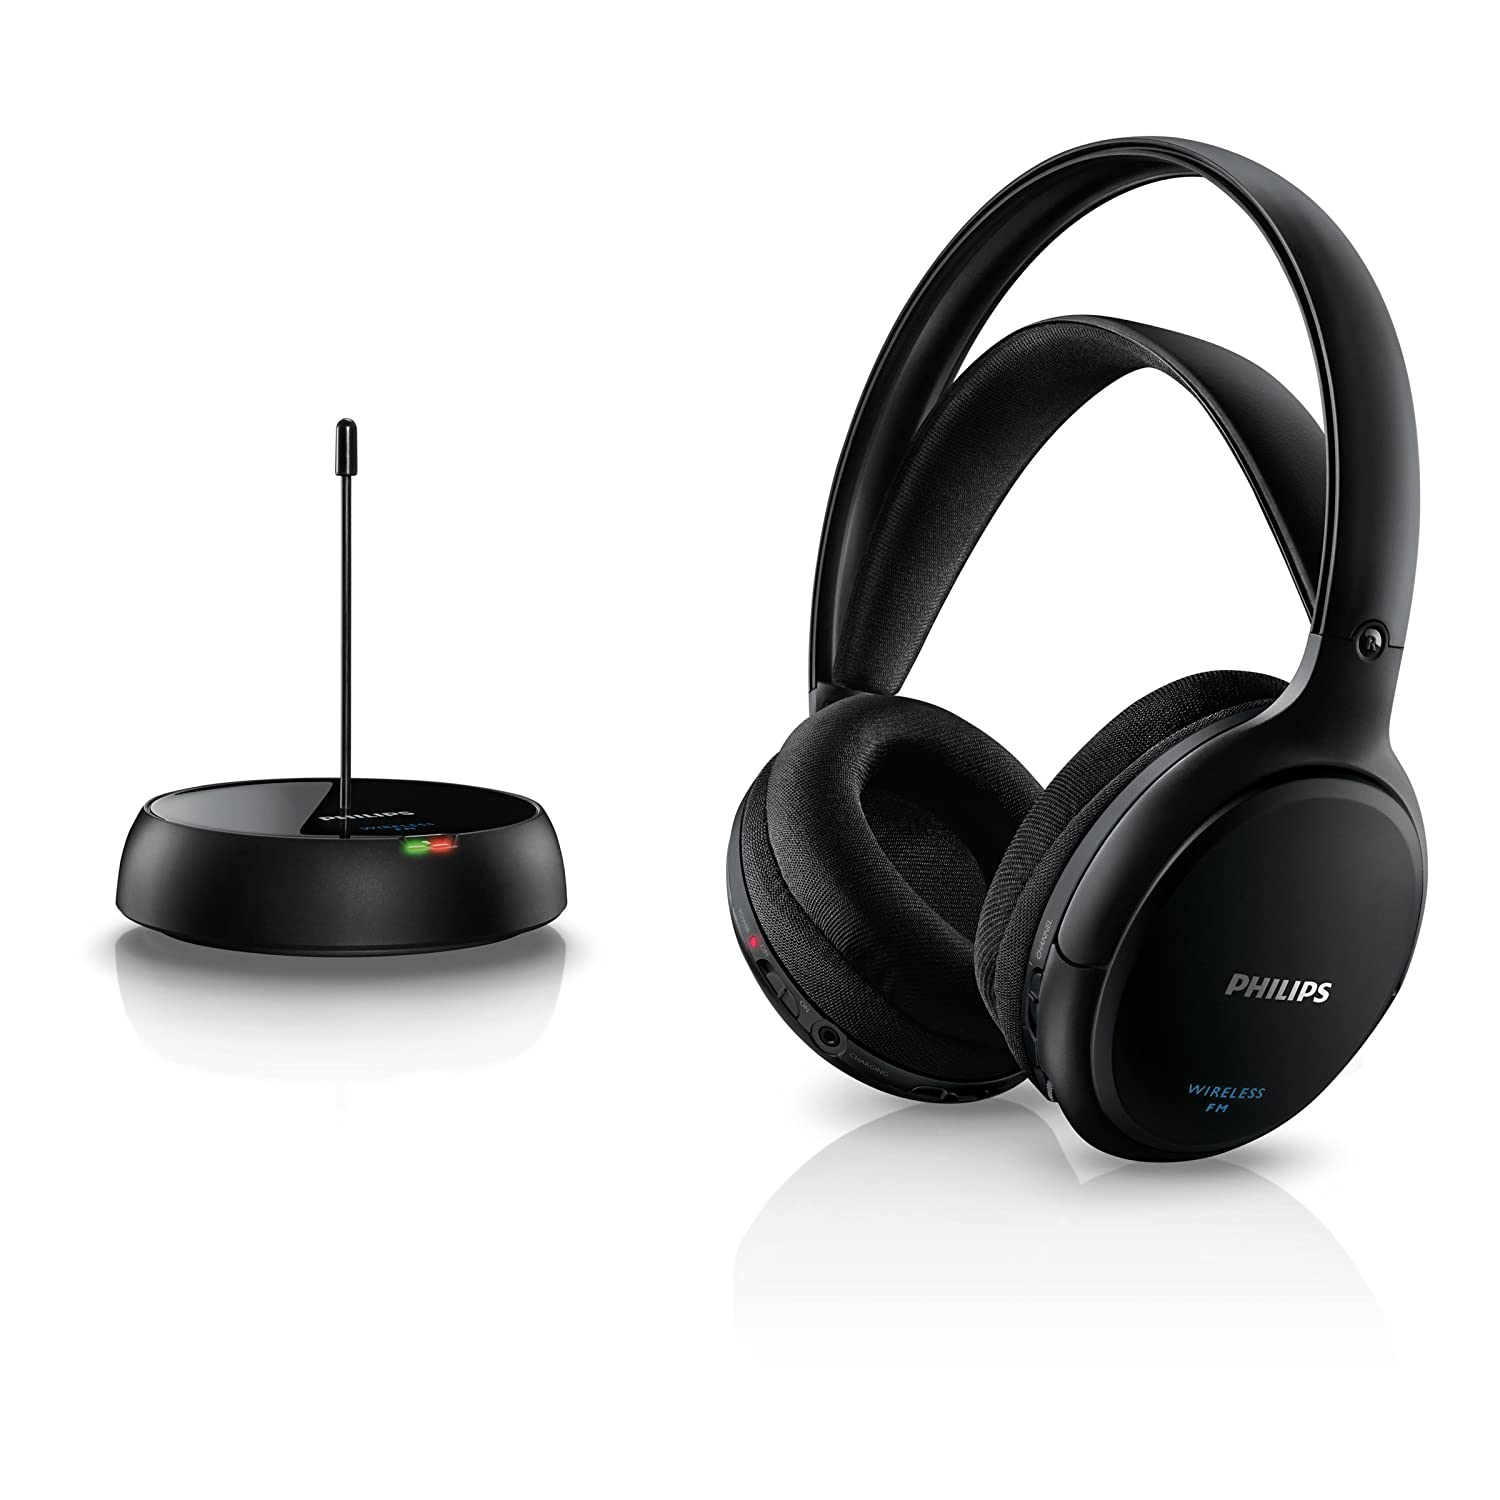 Philips SHC5100 10 Wireless HiFi Headphones 32 mm  Amazon.co.uk  Electronics 1b18d5533e0d